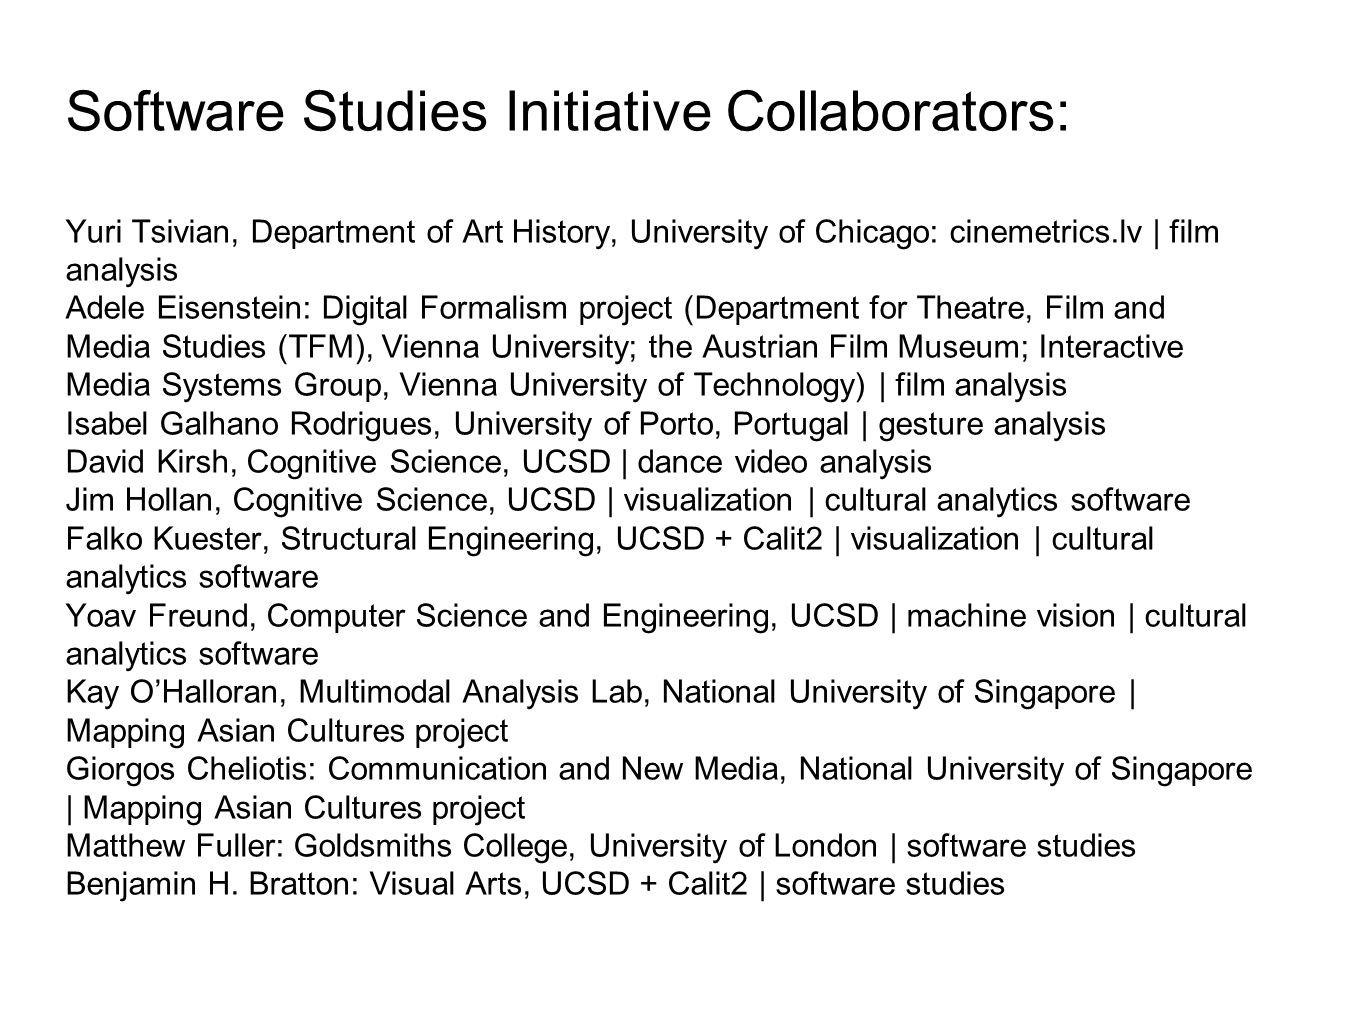 Software Studies Initiative Collaborators: Yuri Tsivian, Department of Art History, University of Chicago: cinemetrics.lv | film analysis Adele Eisenstein: Digital Formalism project (Department for Theatre, Film and Media Studies (TFM), Vienna University; the Austrian Film Museum; Interactive Media Systems Group, Vienna University of Technology) | film analysis Isabel Galhano Rodrigues, University of Porto, Portugal | gesture analysis David Kirsh, Cognitive Science, UCSD | dance video analysis Jim Hollan, Cognitive Science, UCSD | visualization | cultural analytics software Falko Kuester, Structural Engineering, UCSD + Calit2 | visualization | cultural analytics software Yoav Freund, Computer Science and Engineering, UCSD | machine vision | cultural analytics software Kay OHalloran, Multimodal Analysis Lab, National University of Singapore | Mapping Asian Cultures project Giorgos Cheliotis: Communication and New Media, National University of Singapore | Mapping Asian Cultures project Matthew Fuller: Goldsmiths College, University of London | software studies Benjamin H.